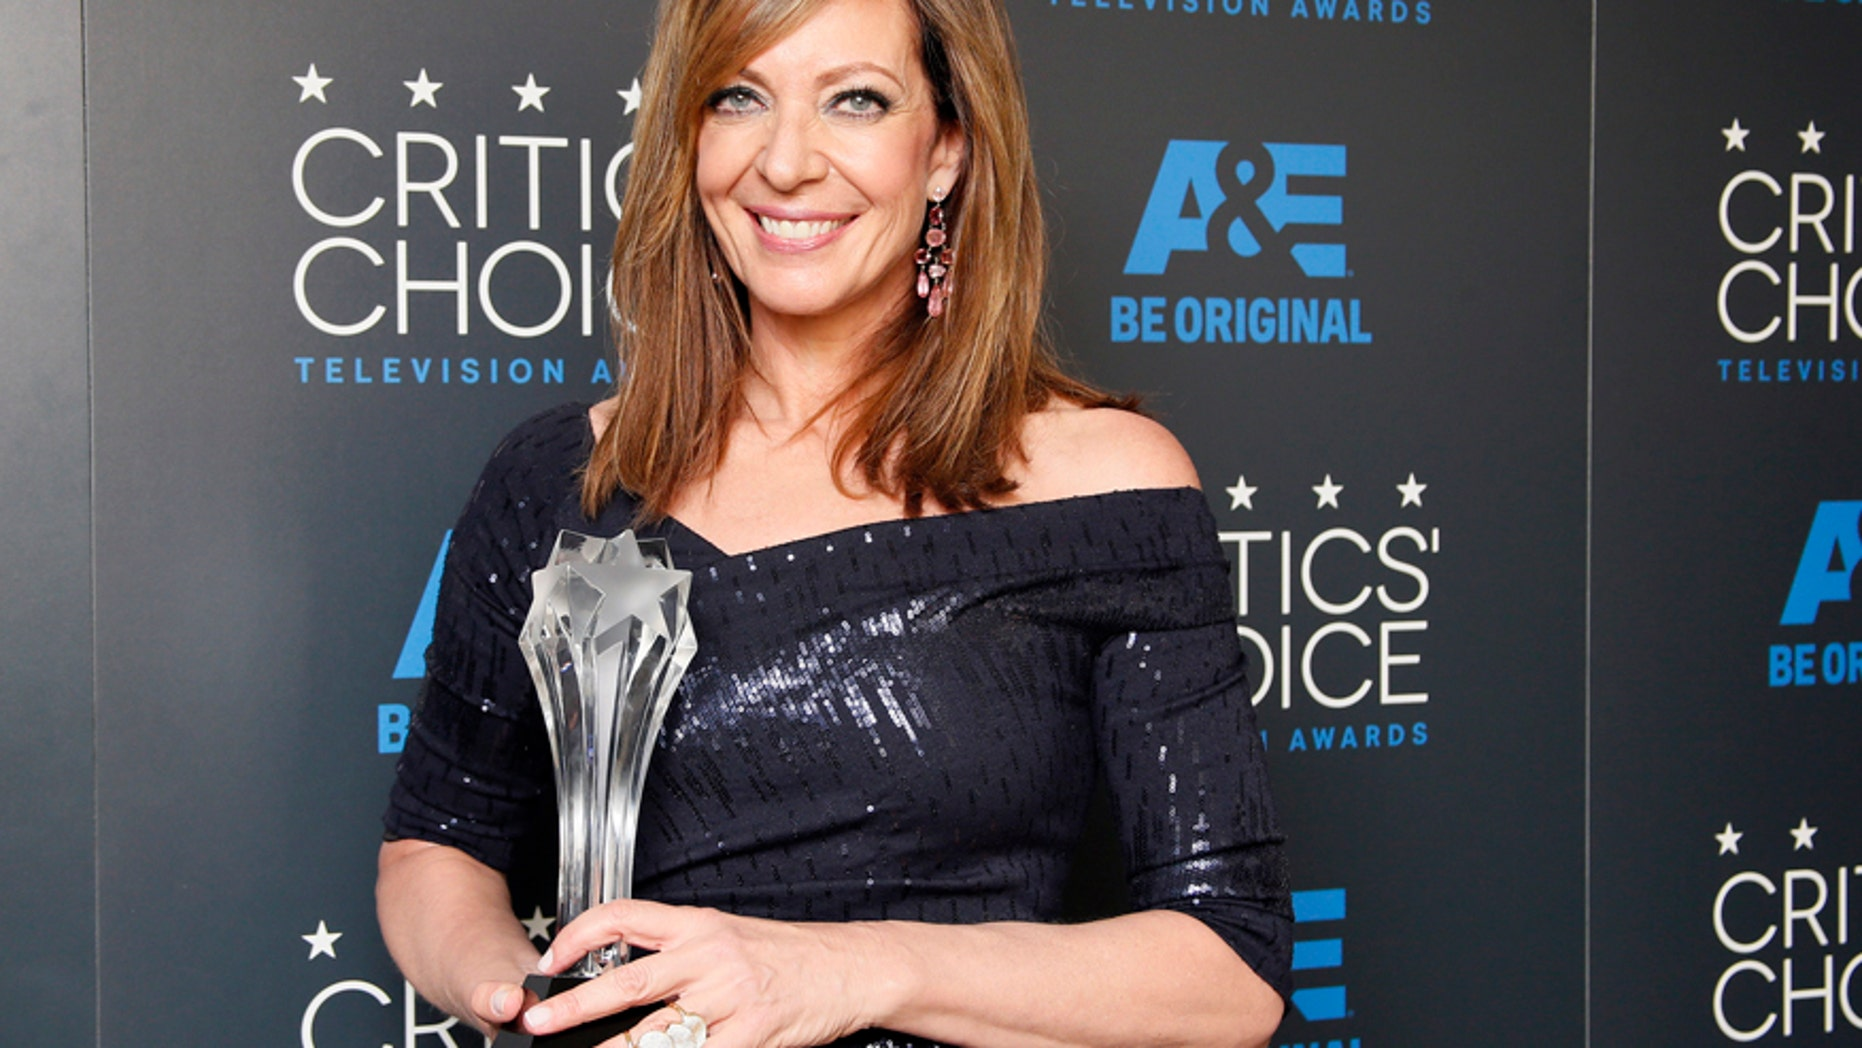 """Actress Allison Janney poses backstage with her award for Best Supporting Actress - Comedy for her role on the CBS sitcom """"Mom"""" during the 5th Annual Critics' Choice Television Awards in Beverly Hills, California May 31, 2015."""